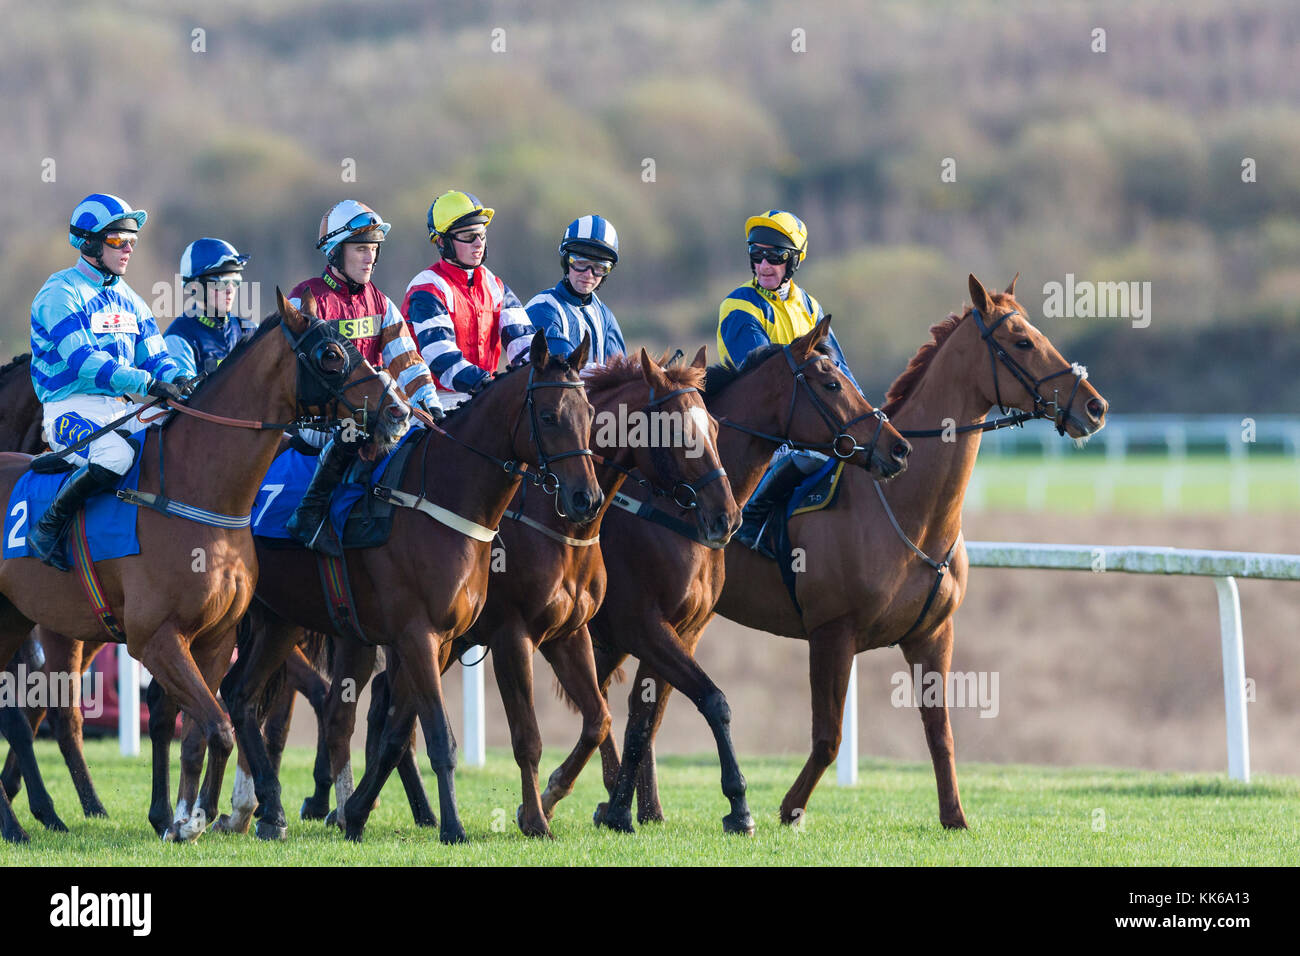 Jockeys and horses prepare to start a race at Ffos Las, Trimsaran, Carmarthenshire, Wales - Stock Image